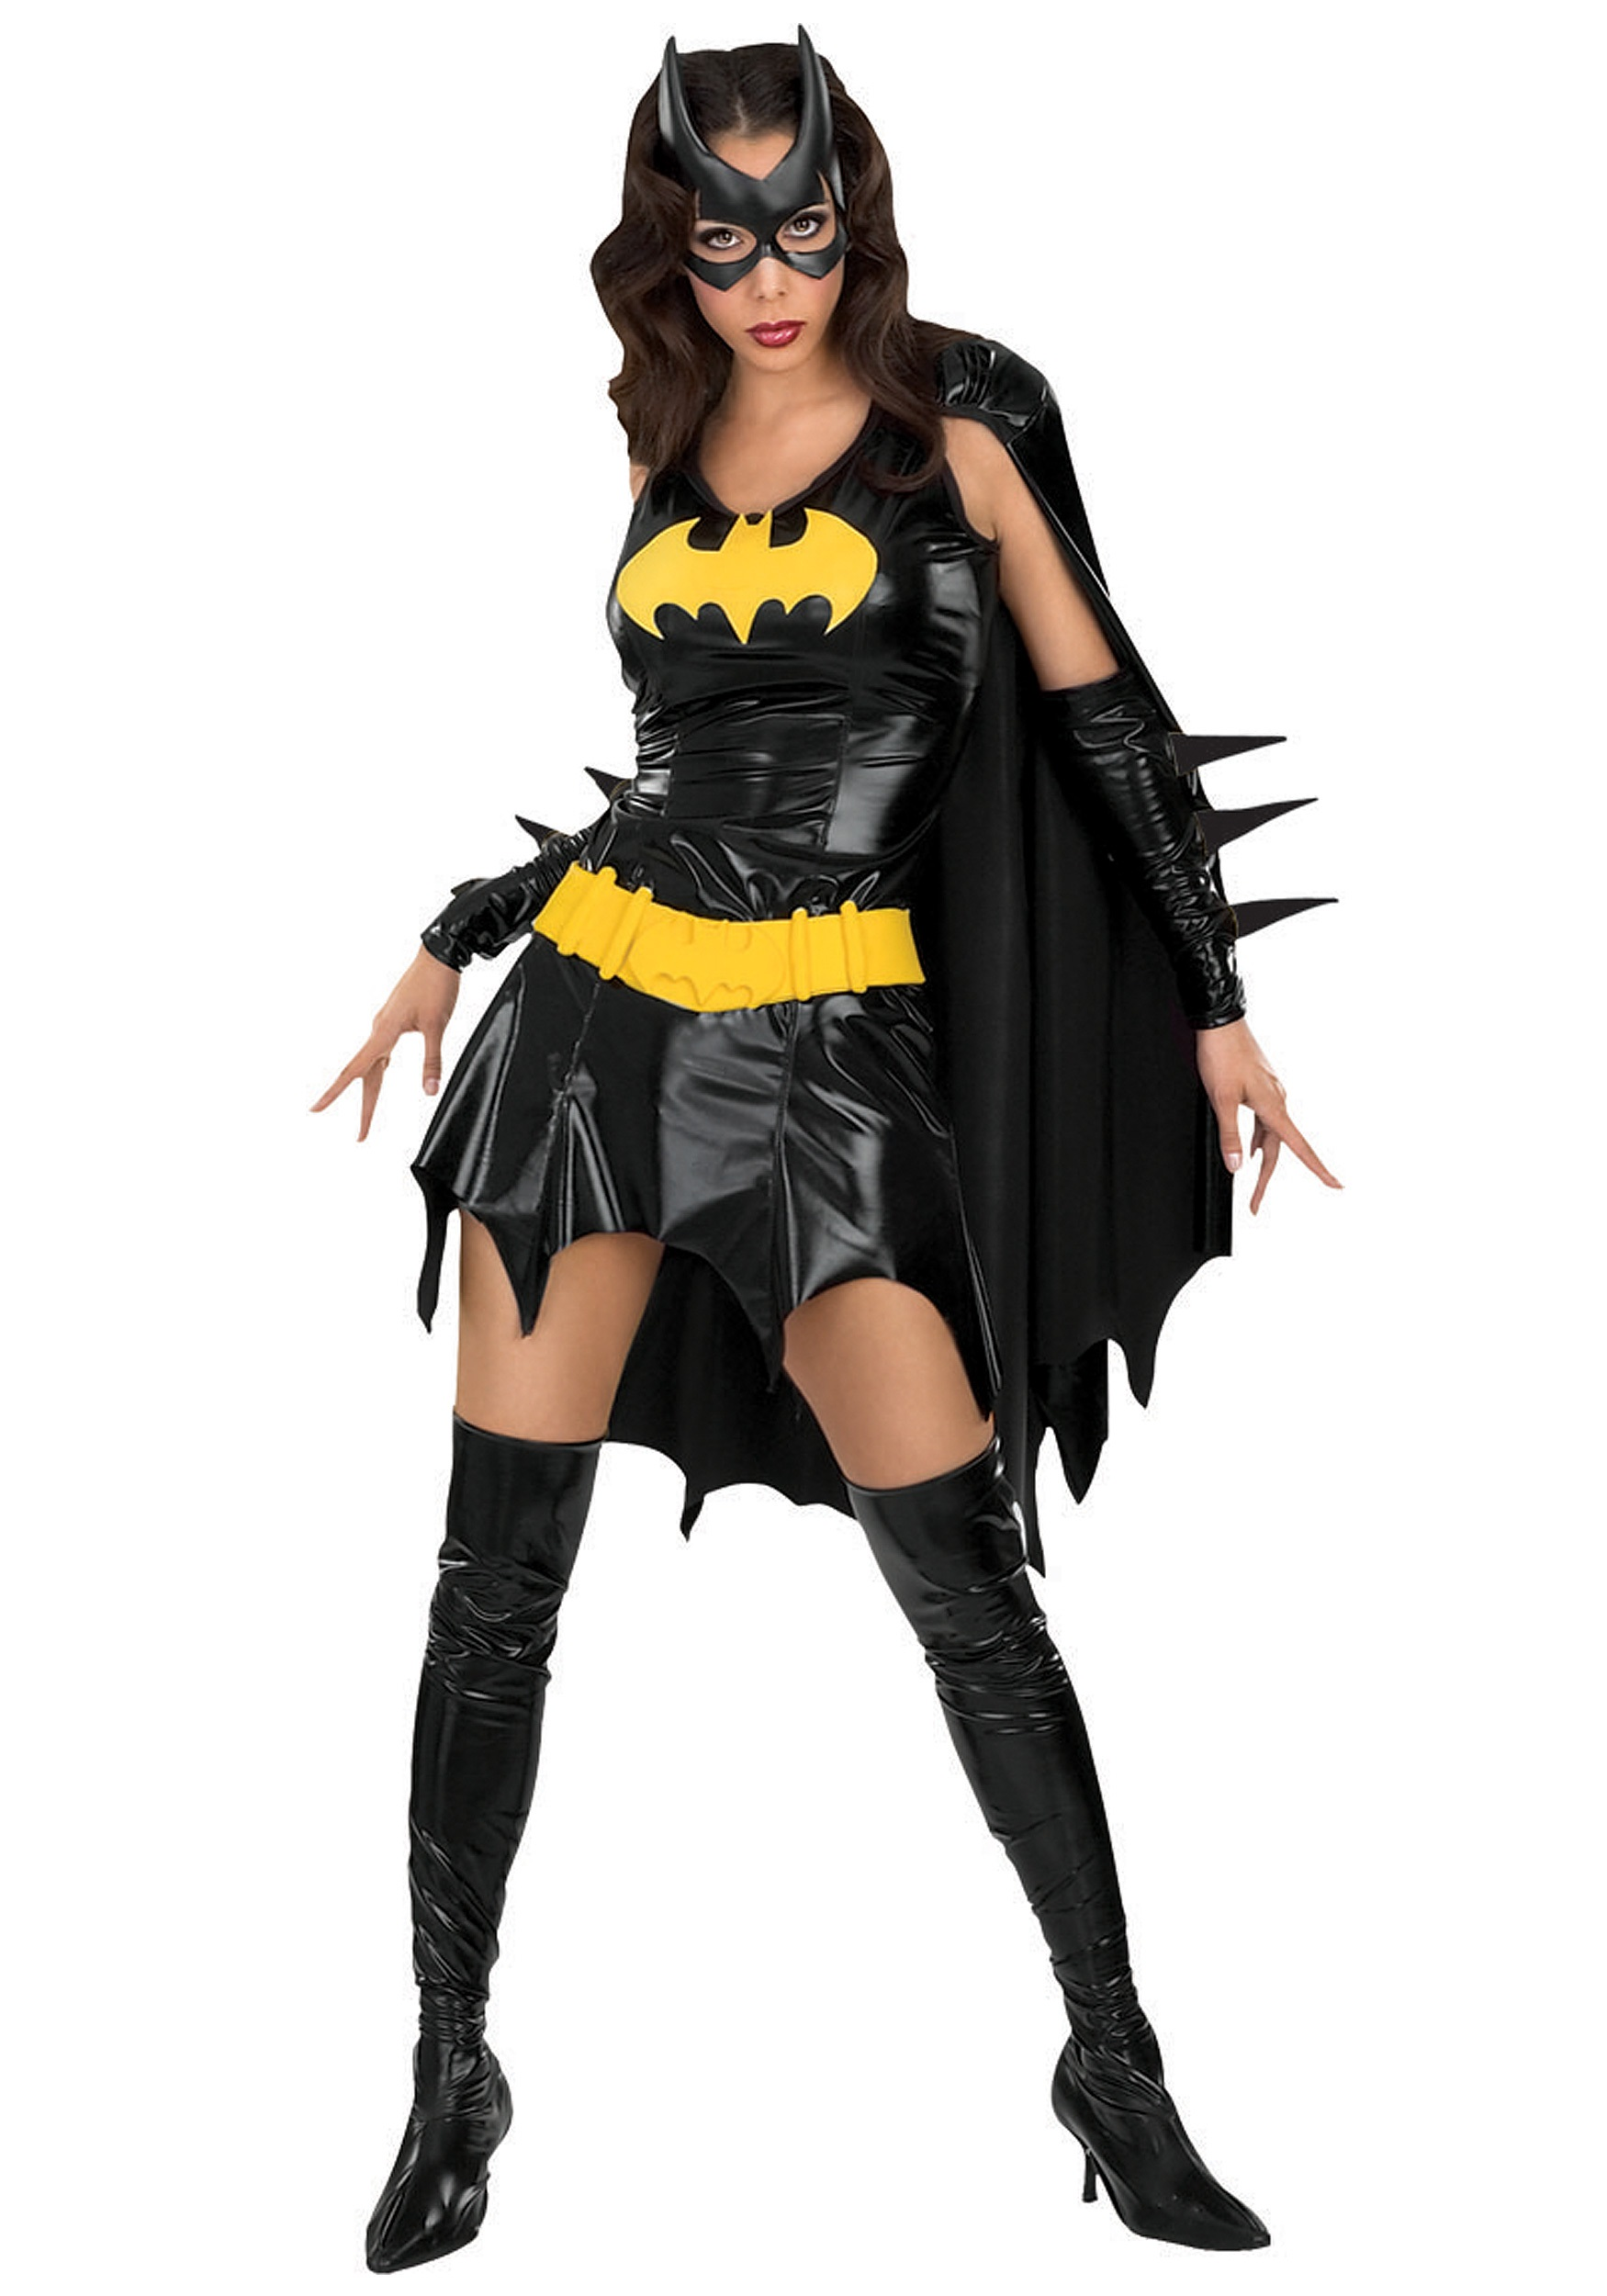 sc 1 st  Halloween Costumes : batwoman costume accessories  - Germanpascual.Com